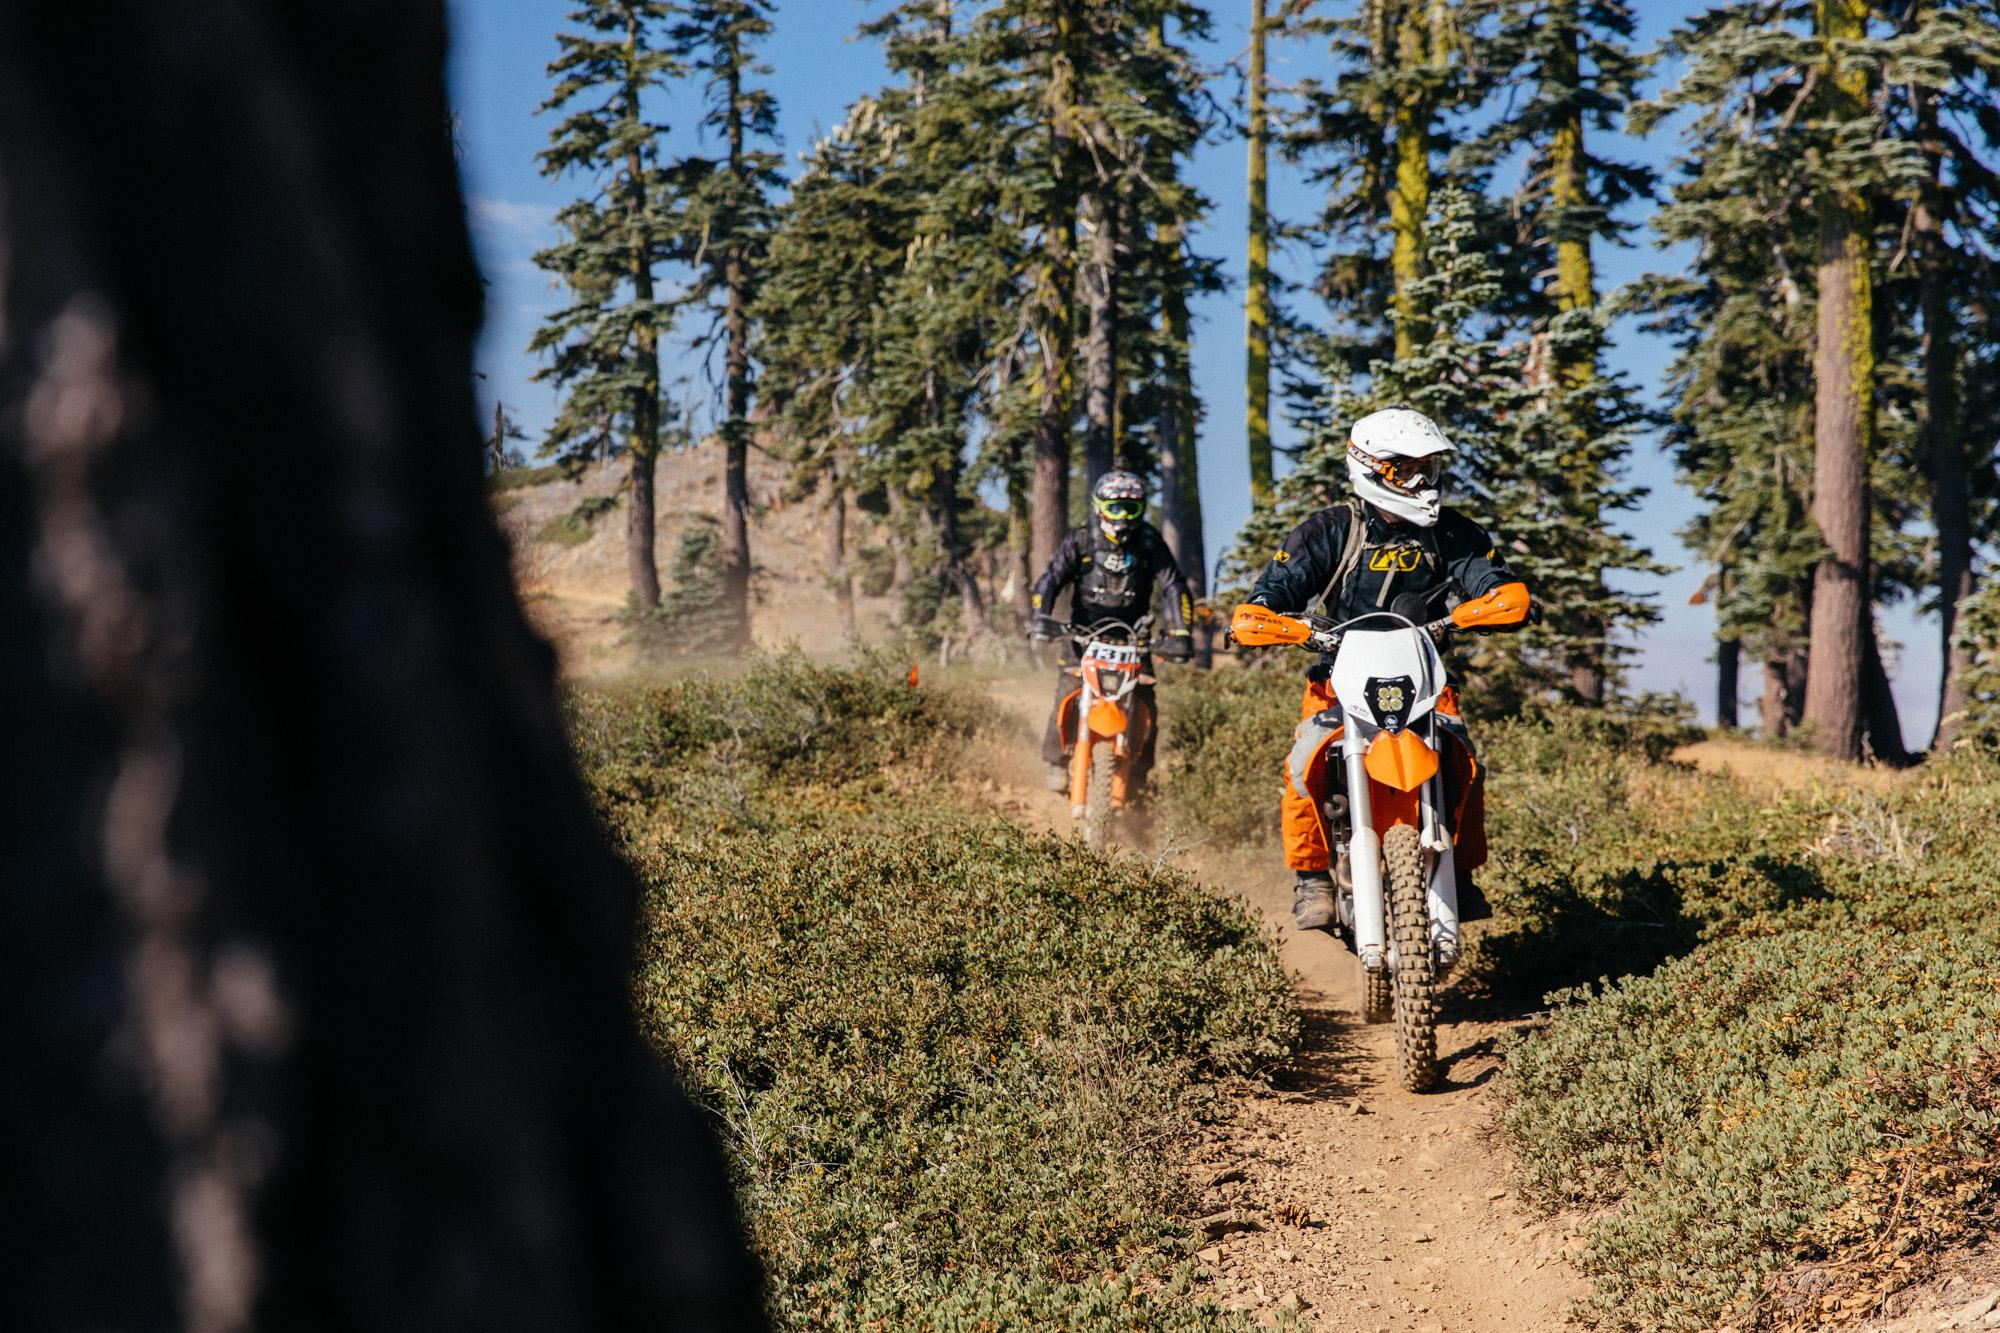 Moto crew - all the trails in the Lost Sierra are mixed-use. :-)